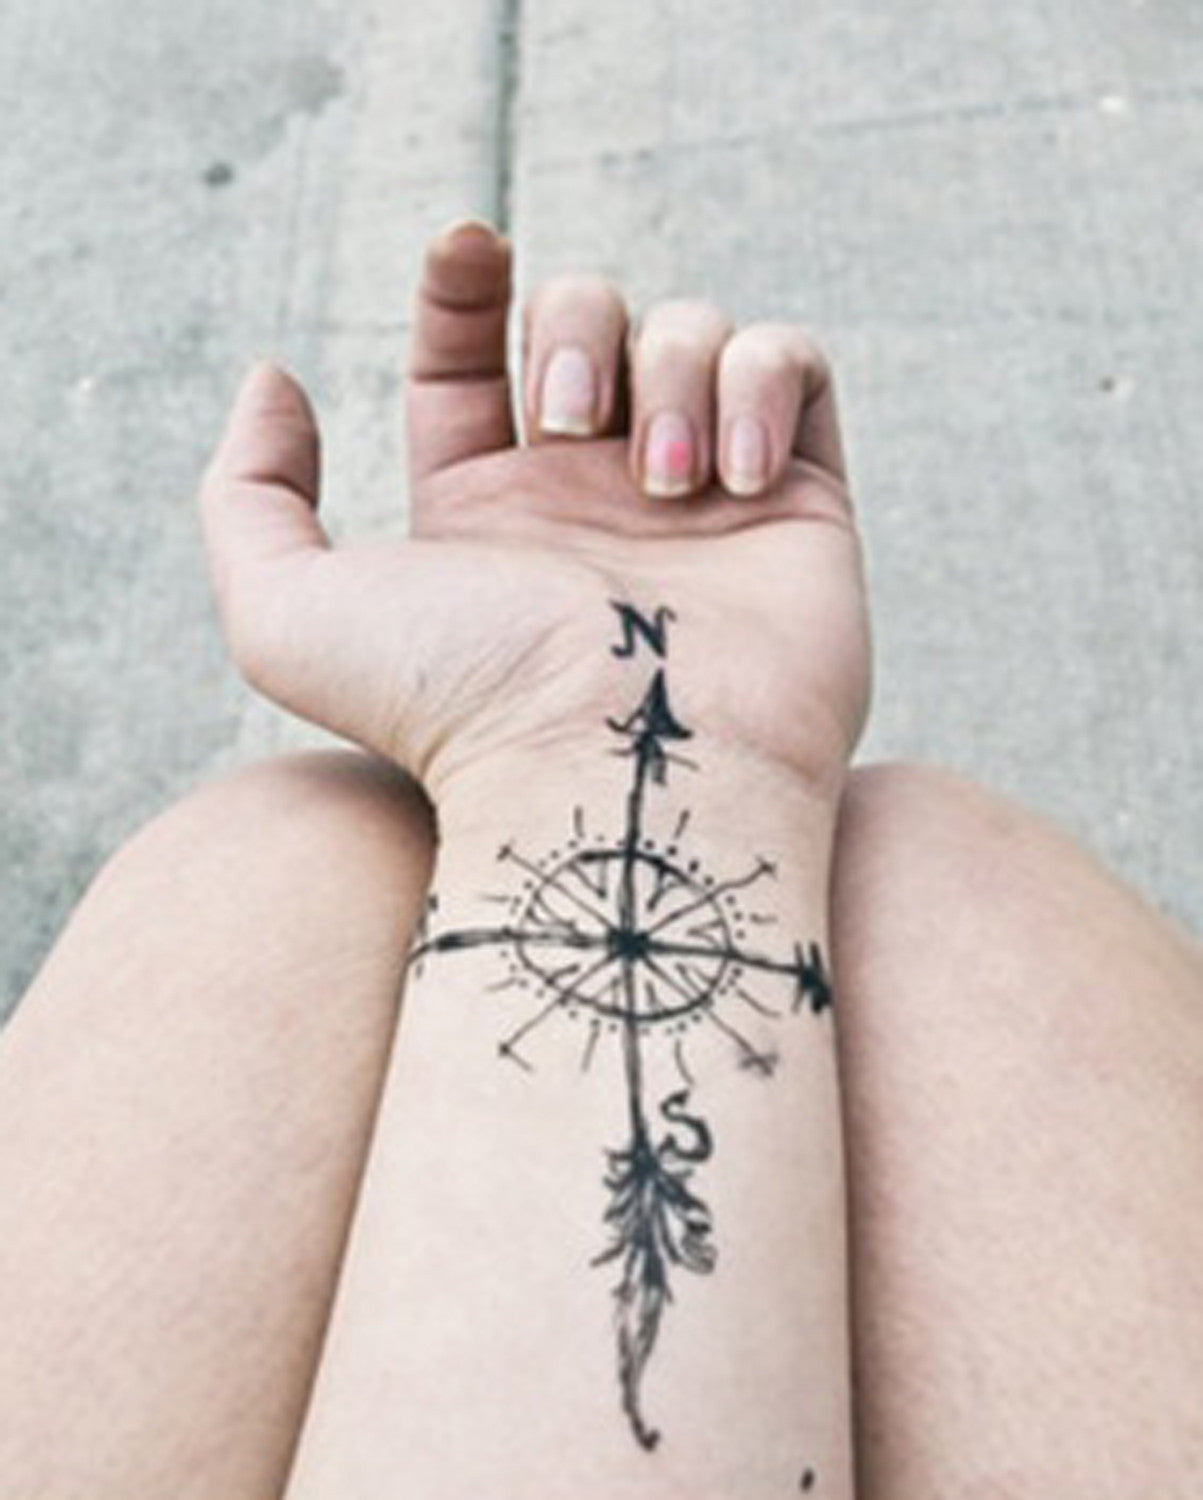 Unique Arrow Feather Compass Wrist Tattoo Ideas for Women - MyBodiArt.com